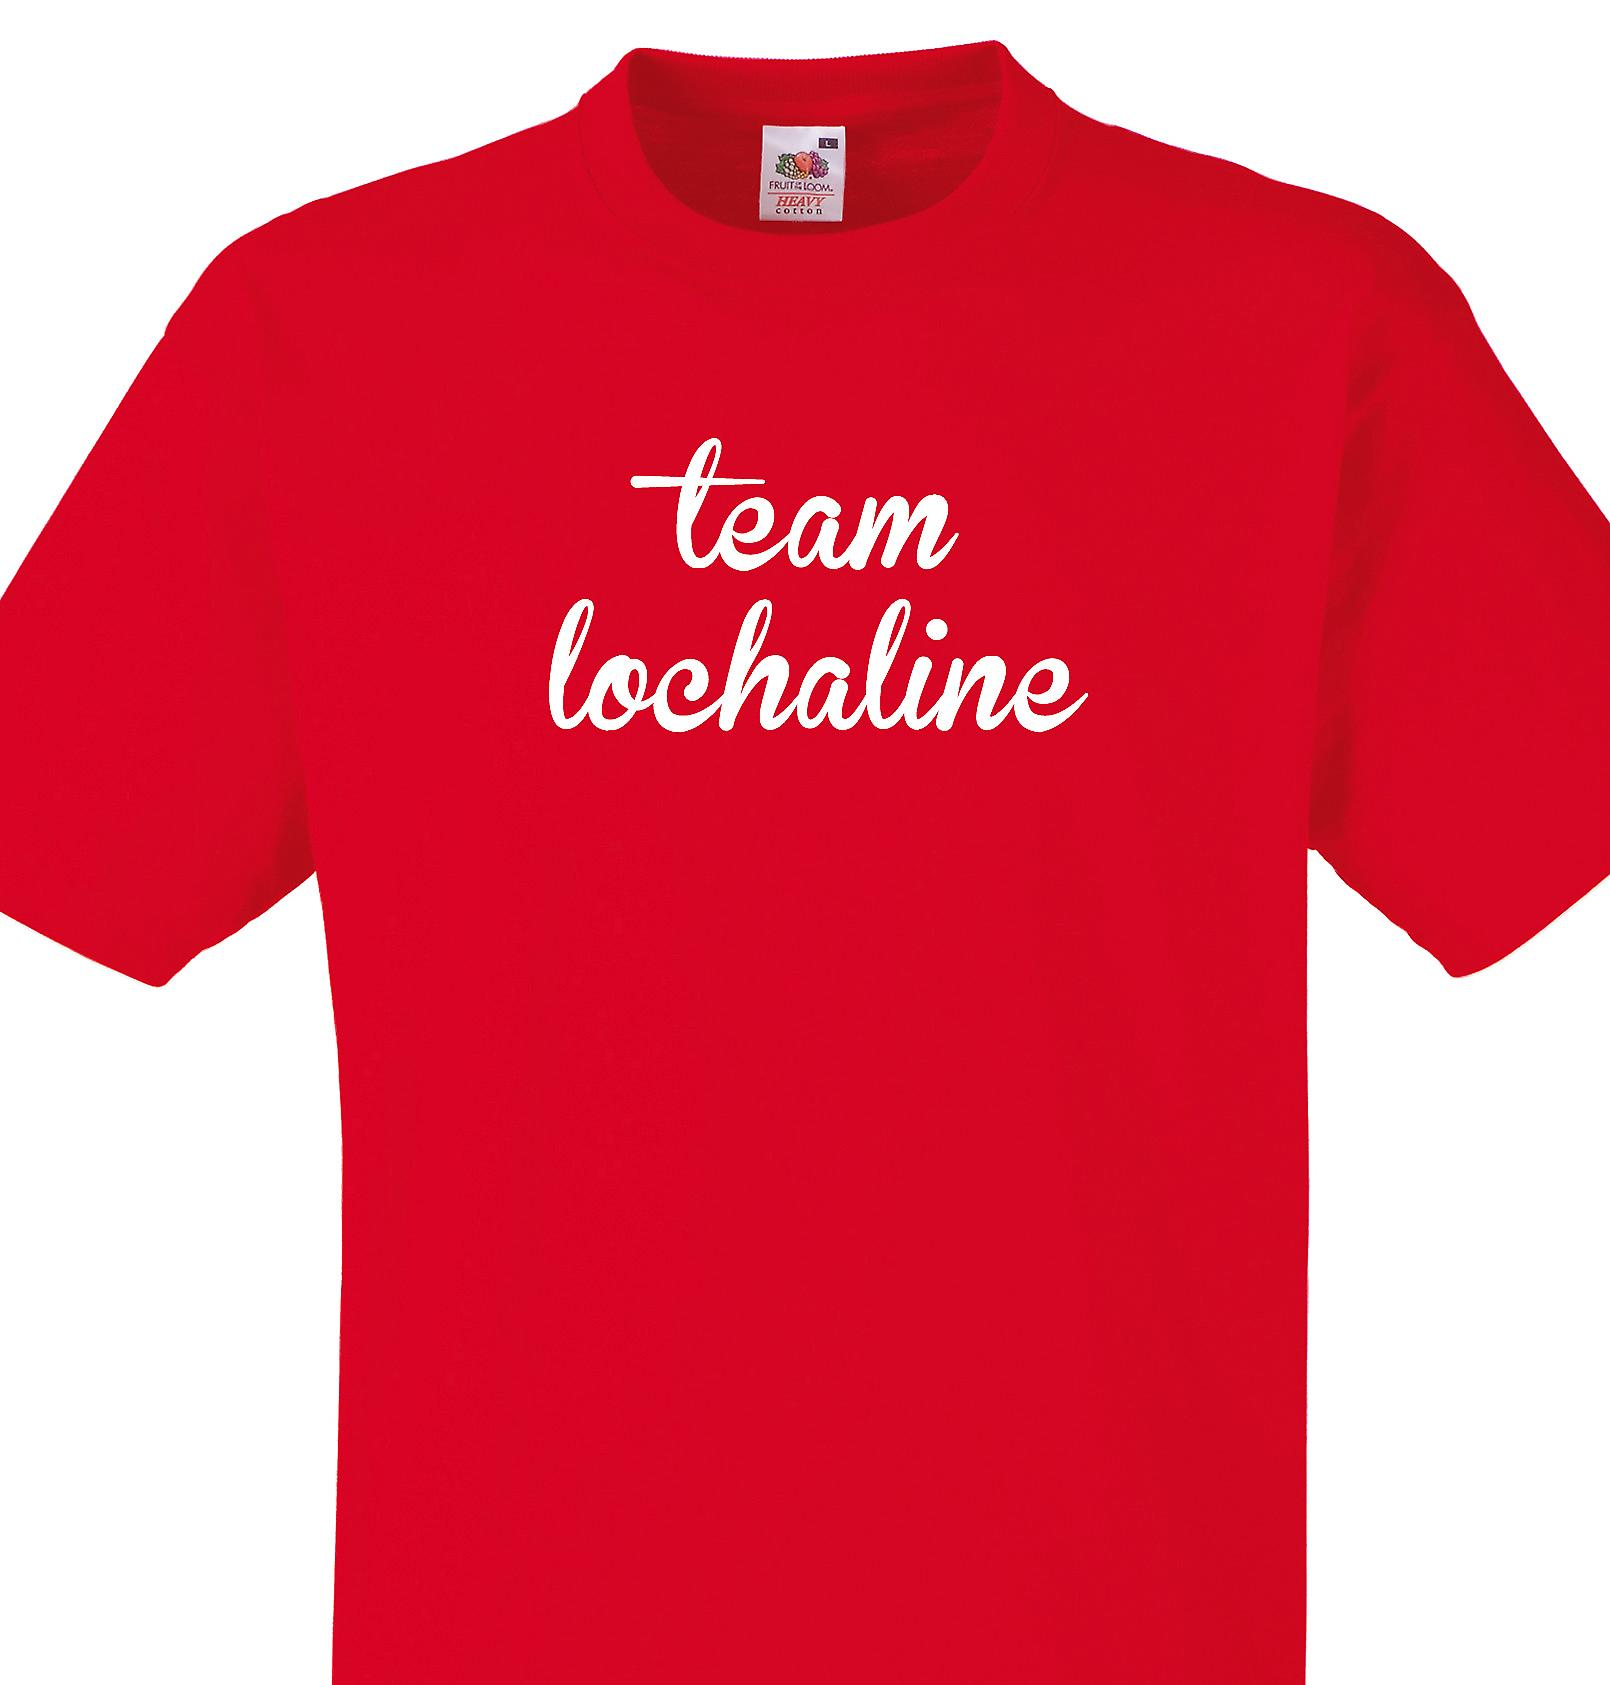 Team Lochaline Red T shirt